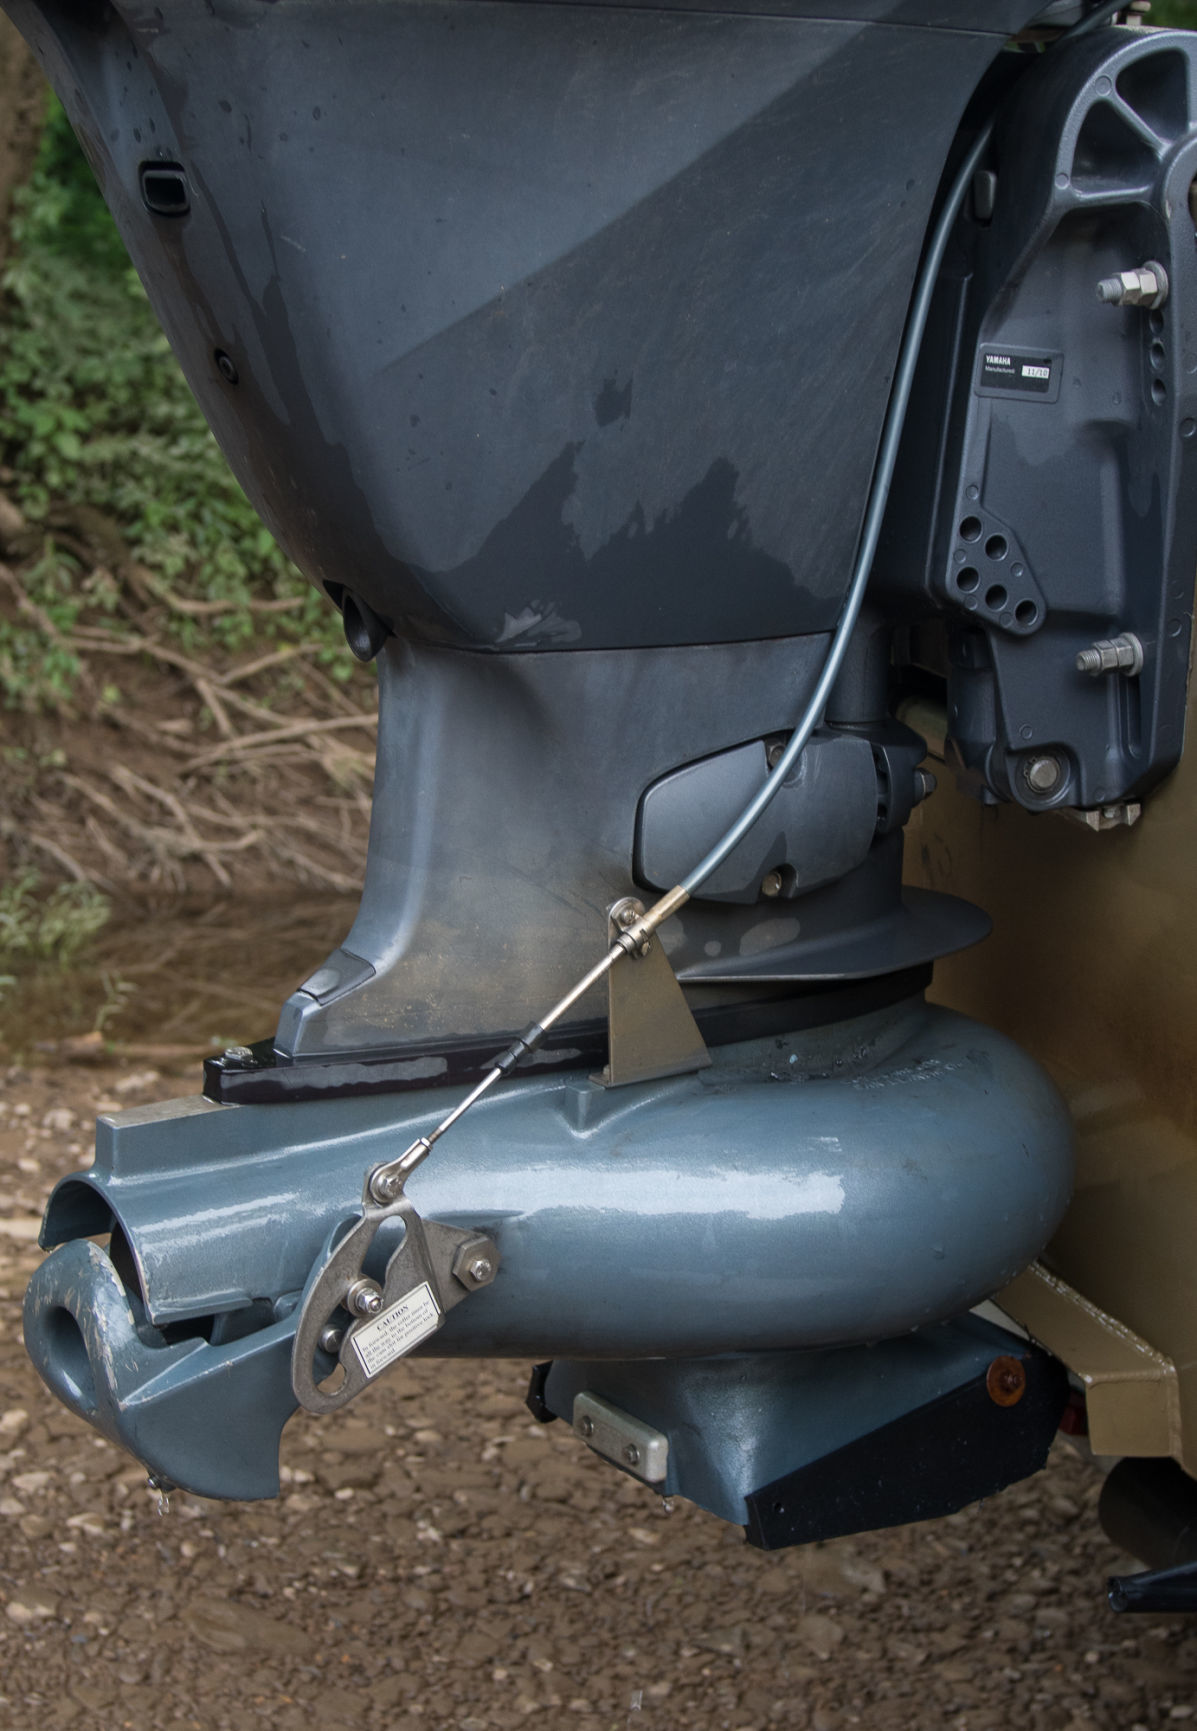 Jet-drive boats get WV anglers to fishing spots they once